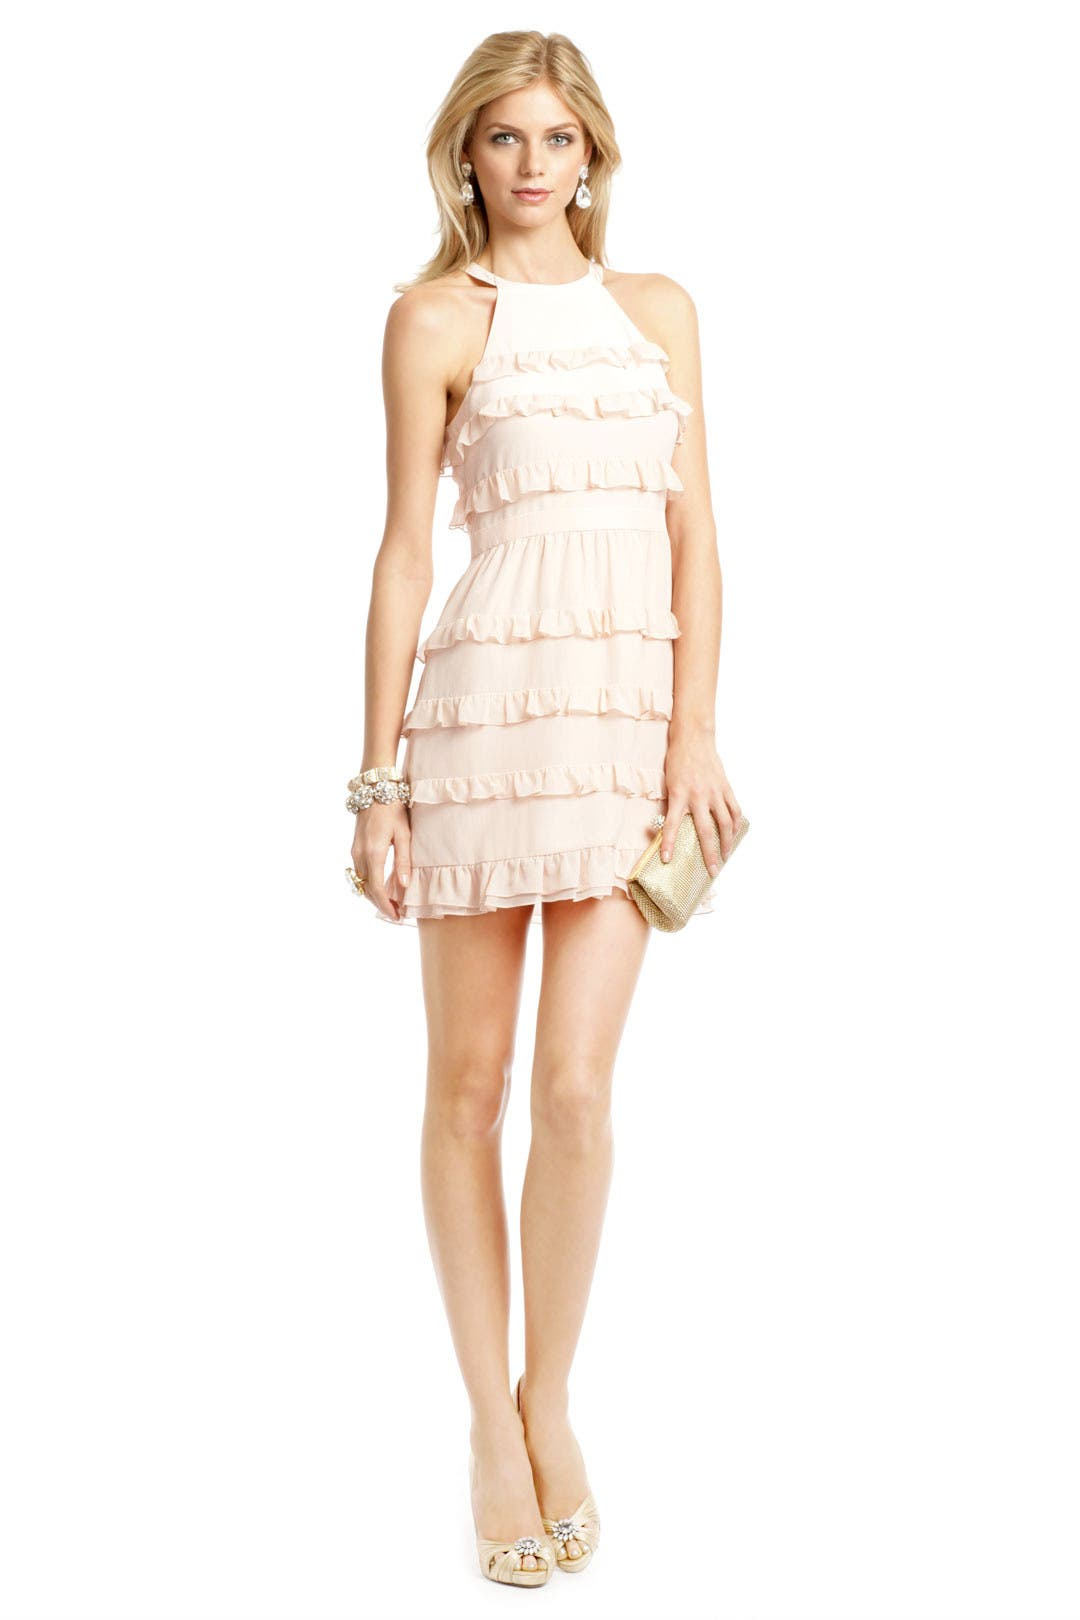 Cutie Pie Dress by Tibi